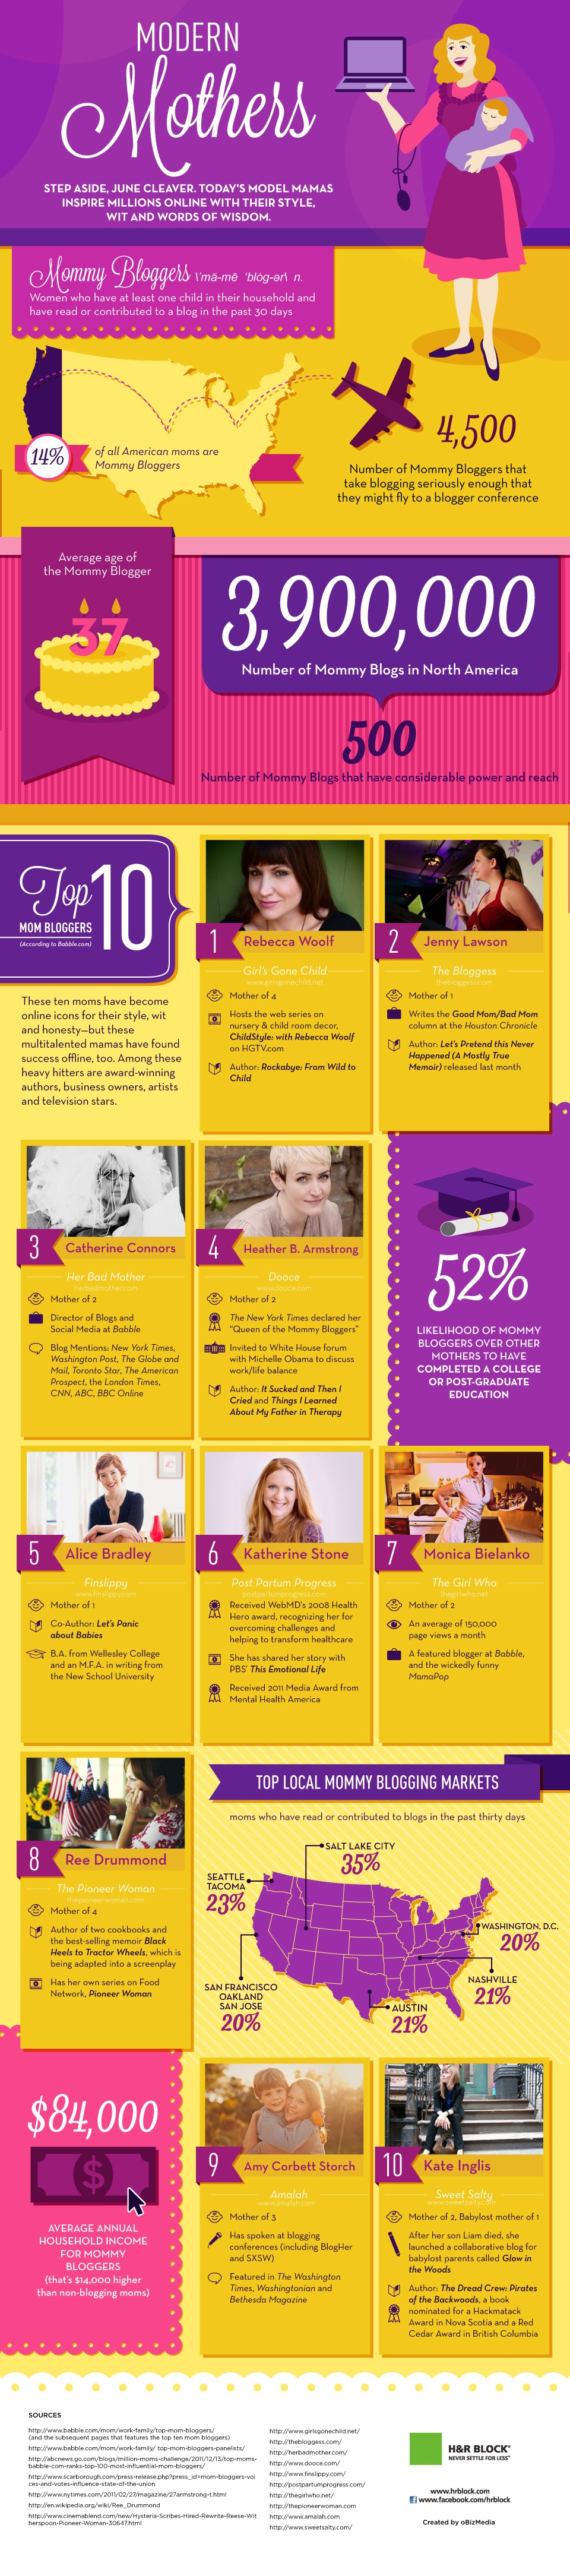 infographic mam bloggers